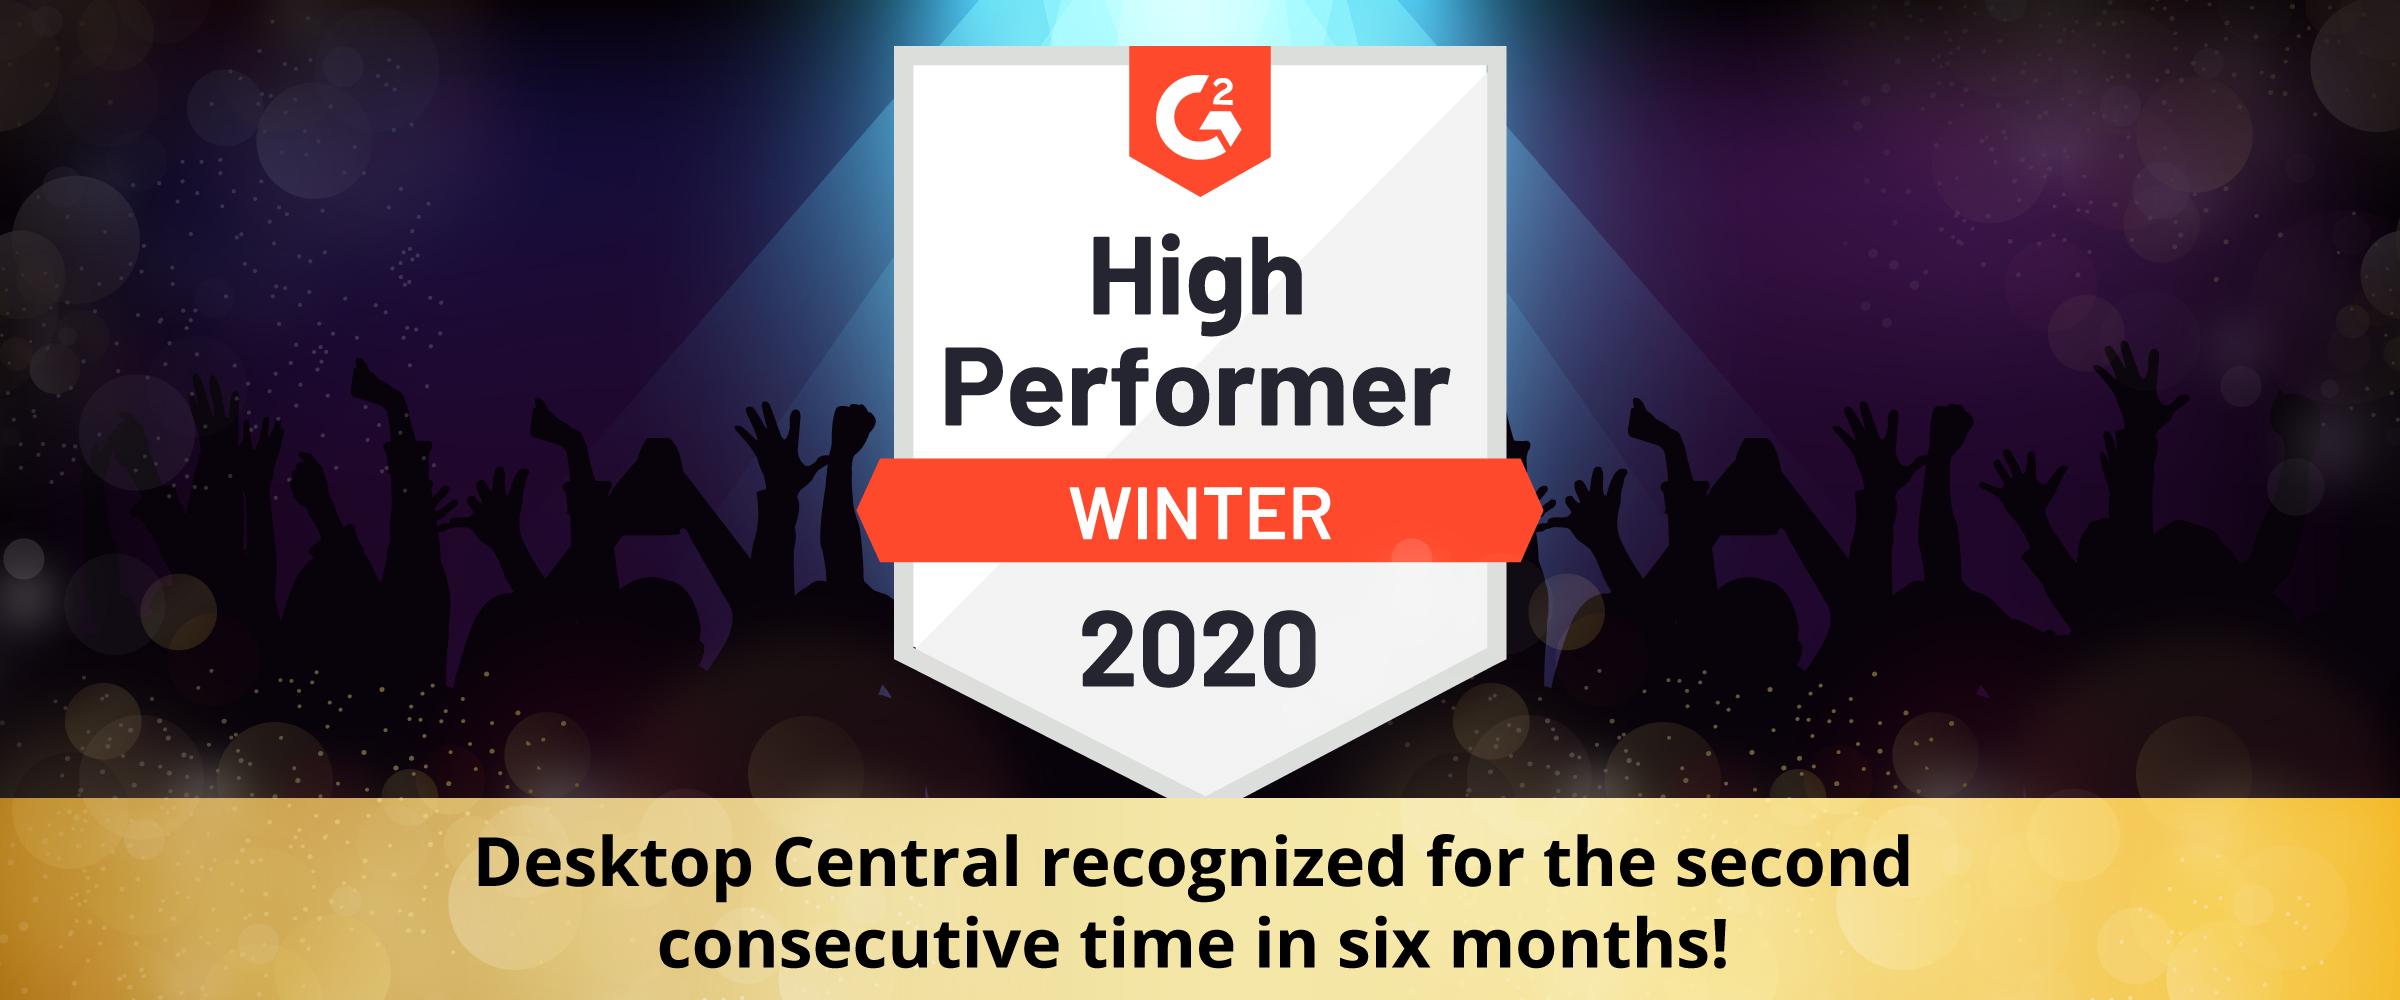 Desktop Central recognized for the second consecutive timein six months!